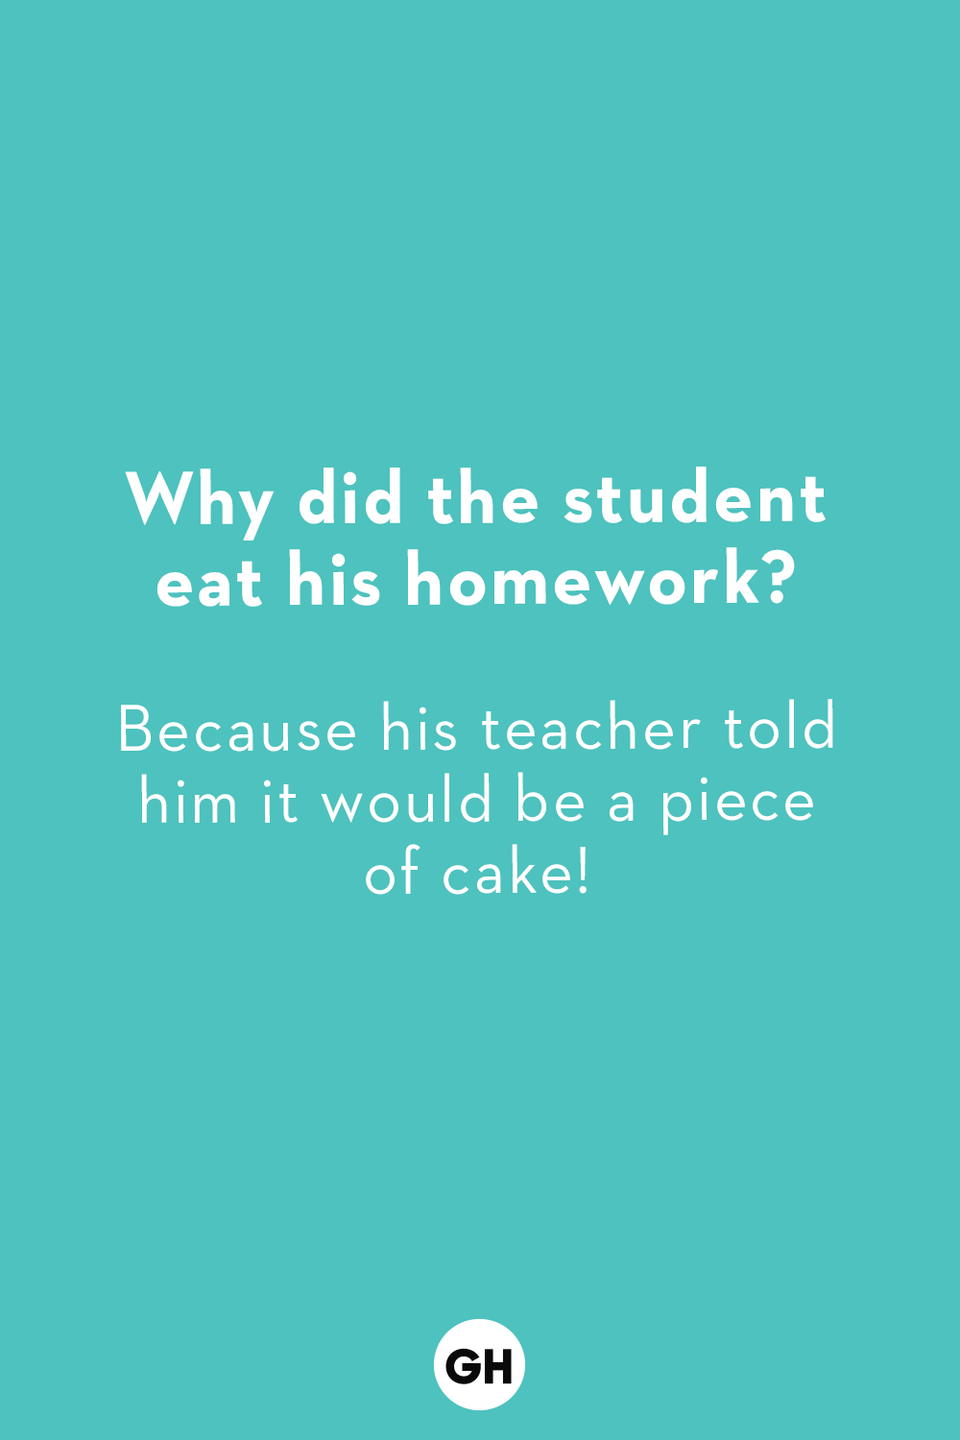 <p>Because his teacher told him it would be a piece of cake!</p>